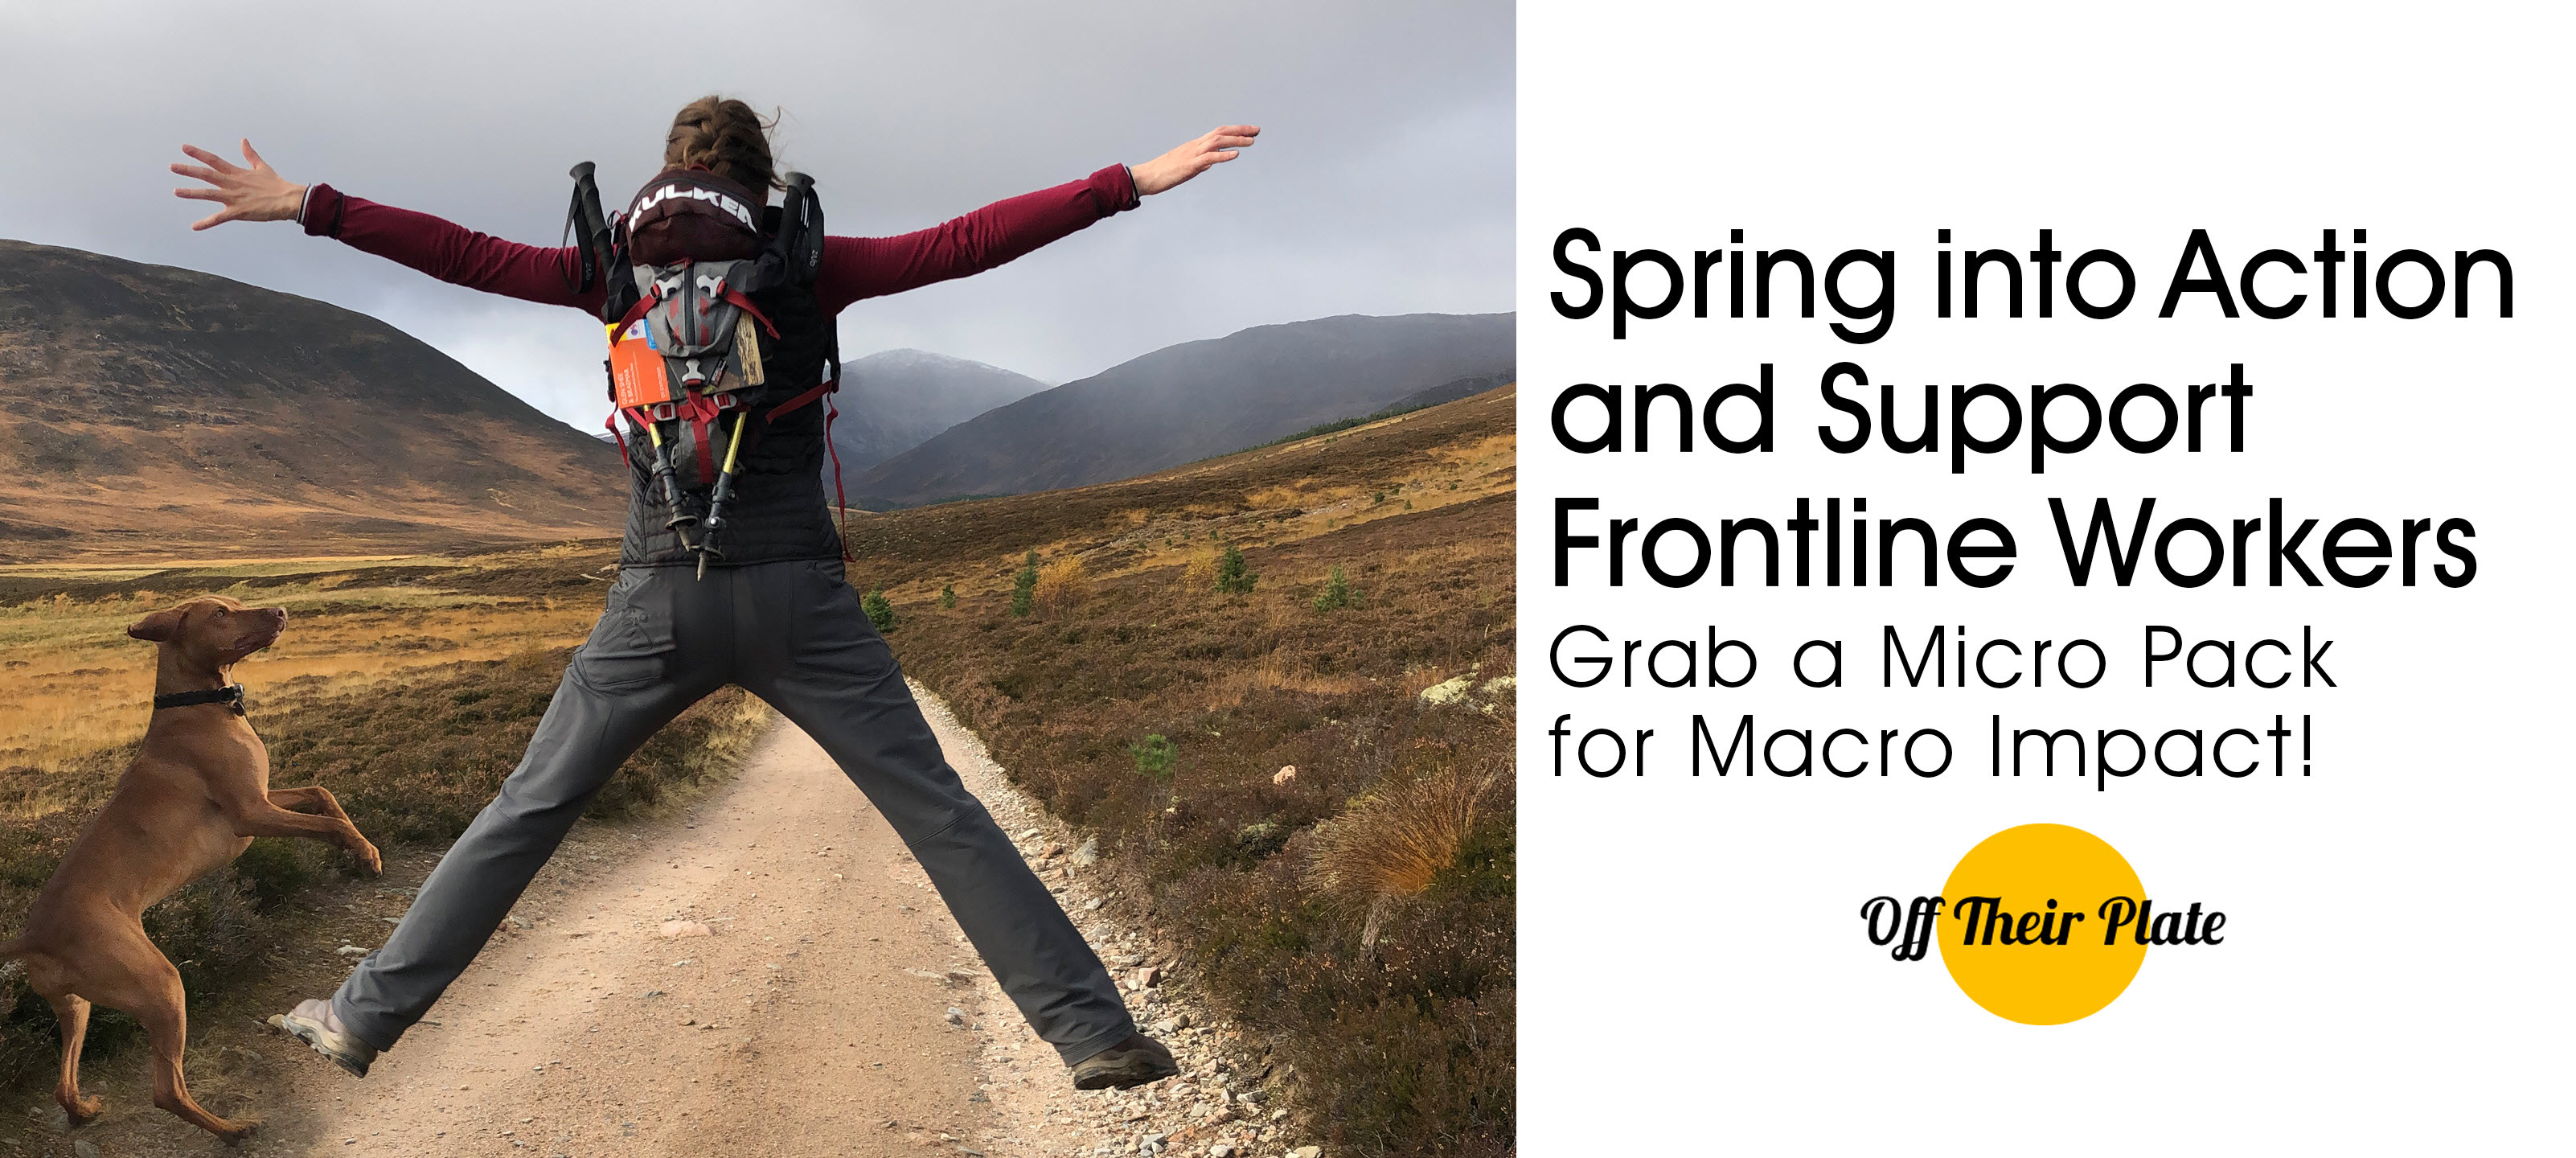 Spring Into Action and Support Frontline Workers - Grab a Micro Pack for Macro Impact!